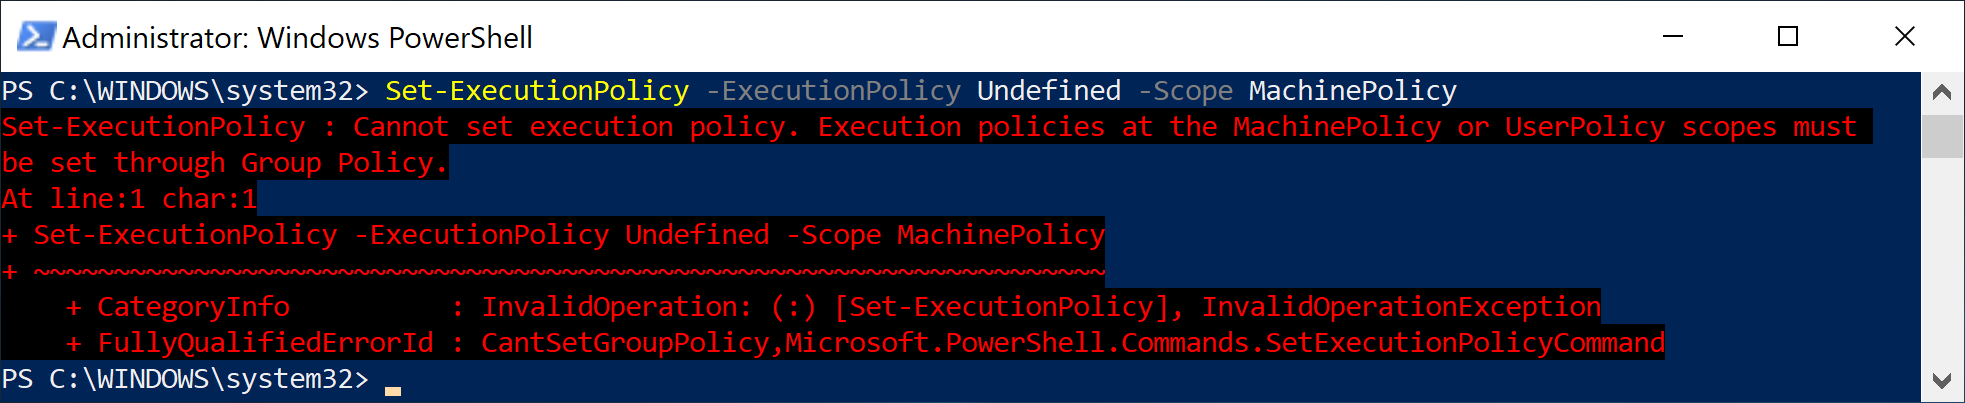 If you try to set an execution policy at these scopes from the PowerShell console, you would get an error